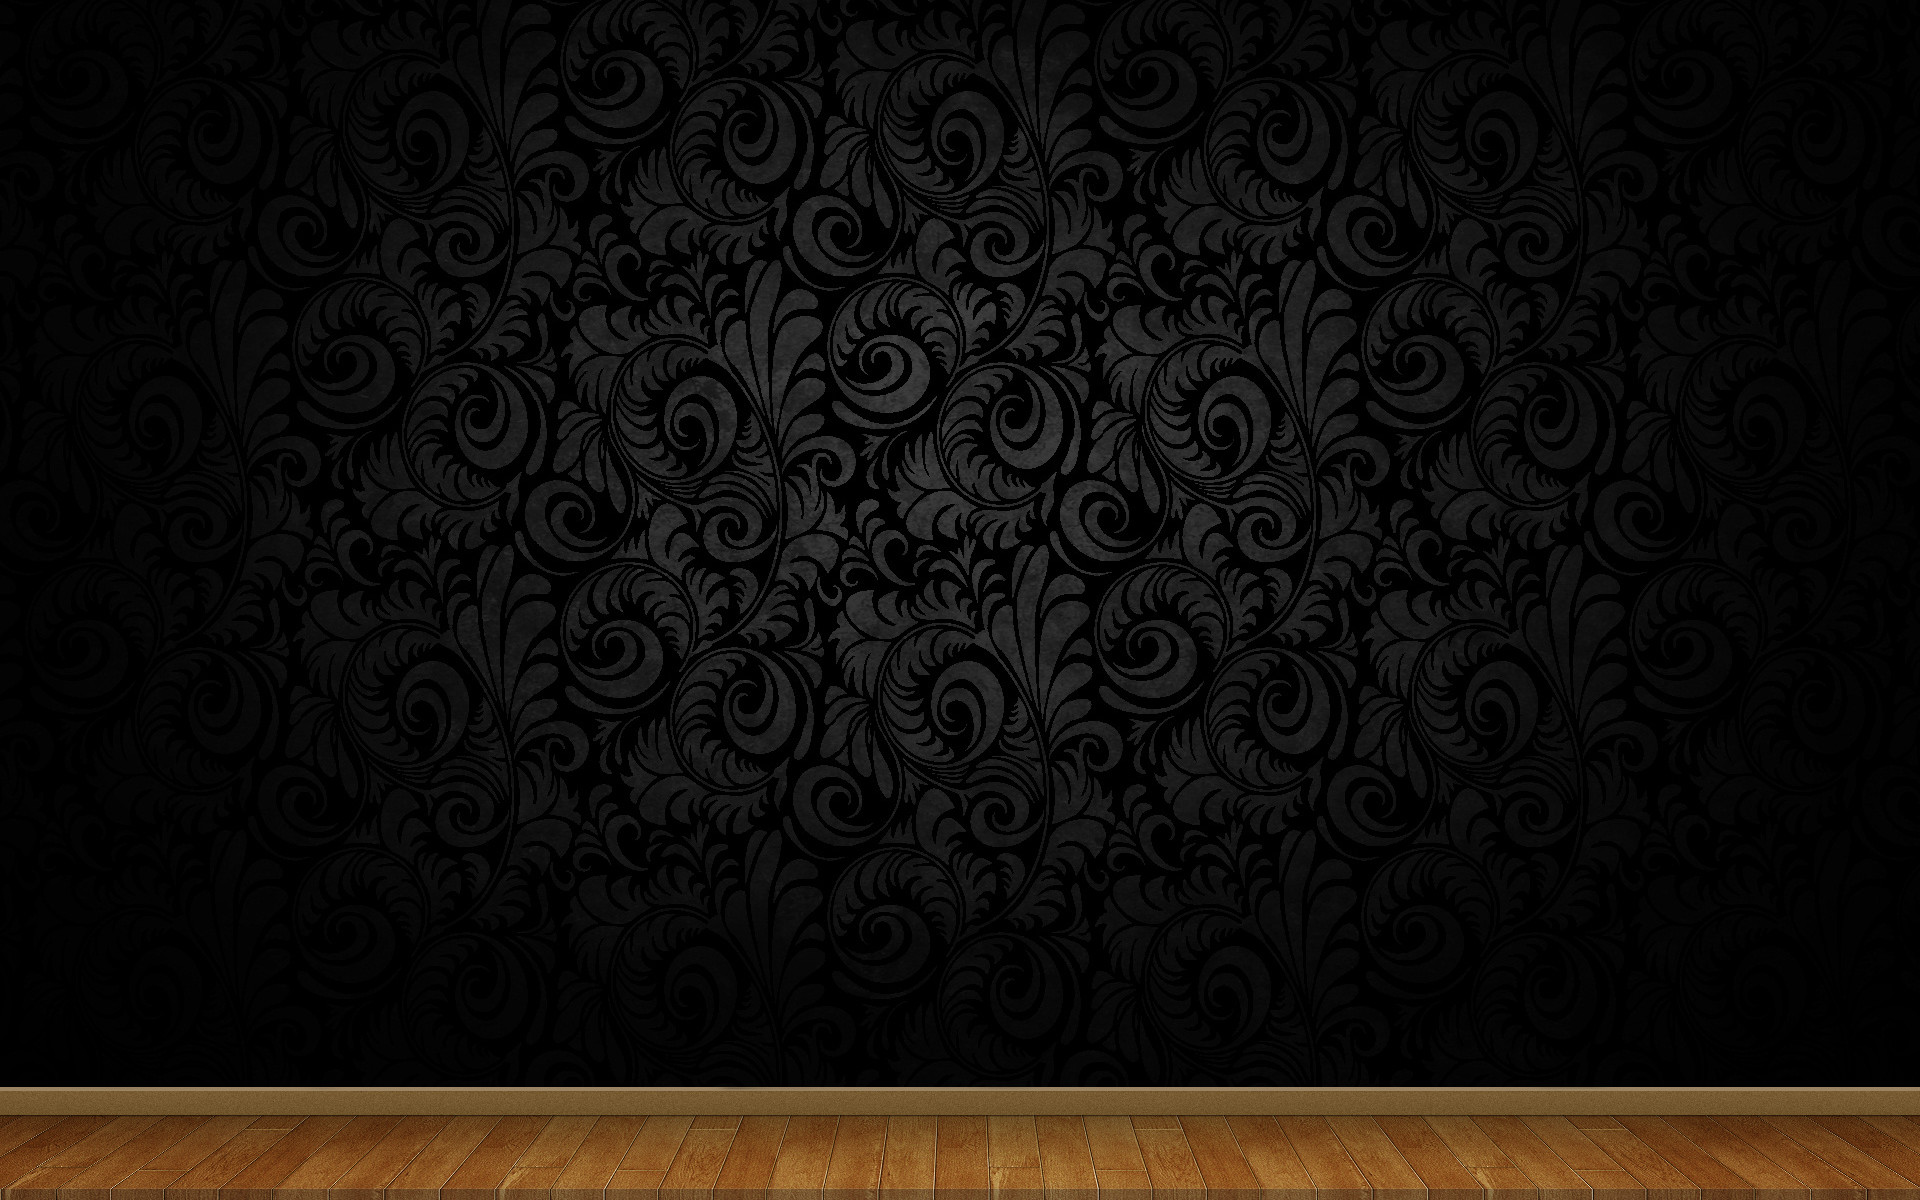 Res: 1920x1200, 3d view abstract dark floor minimalistic patterns wood